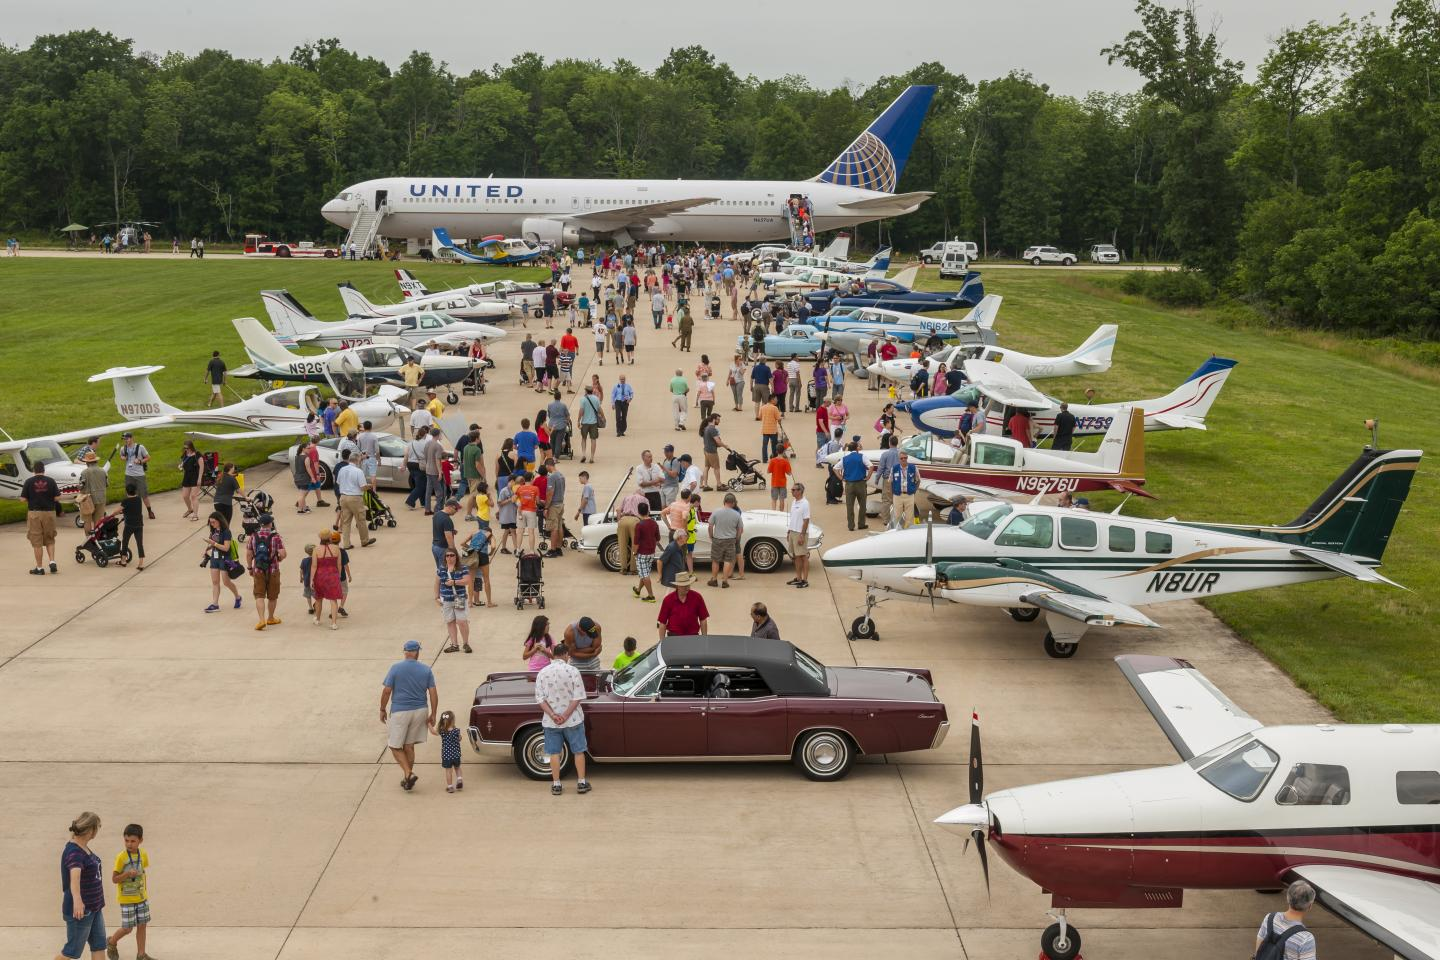 Airplanes on display outside the Udvar-Hazy Center.